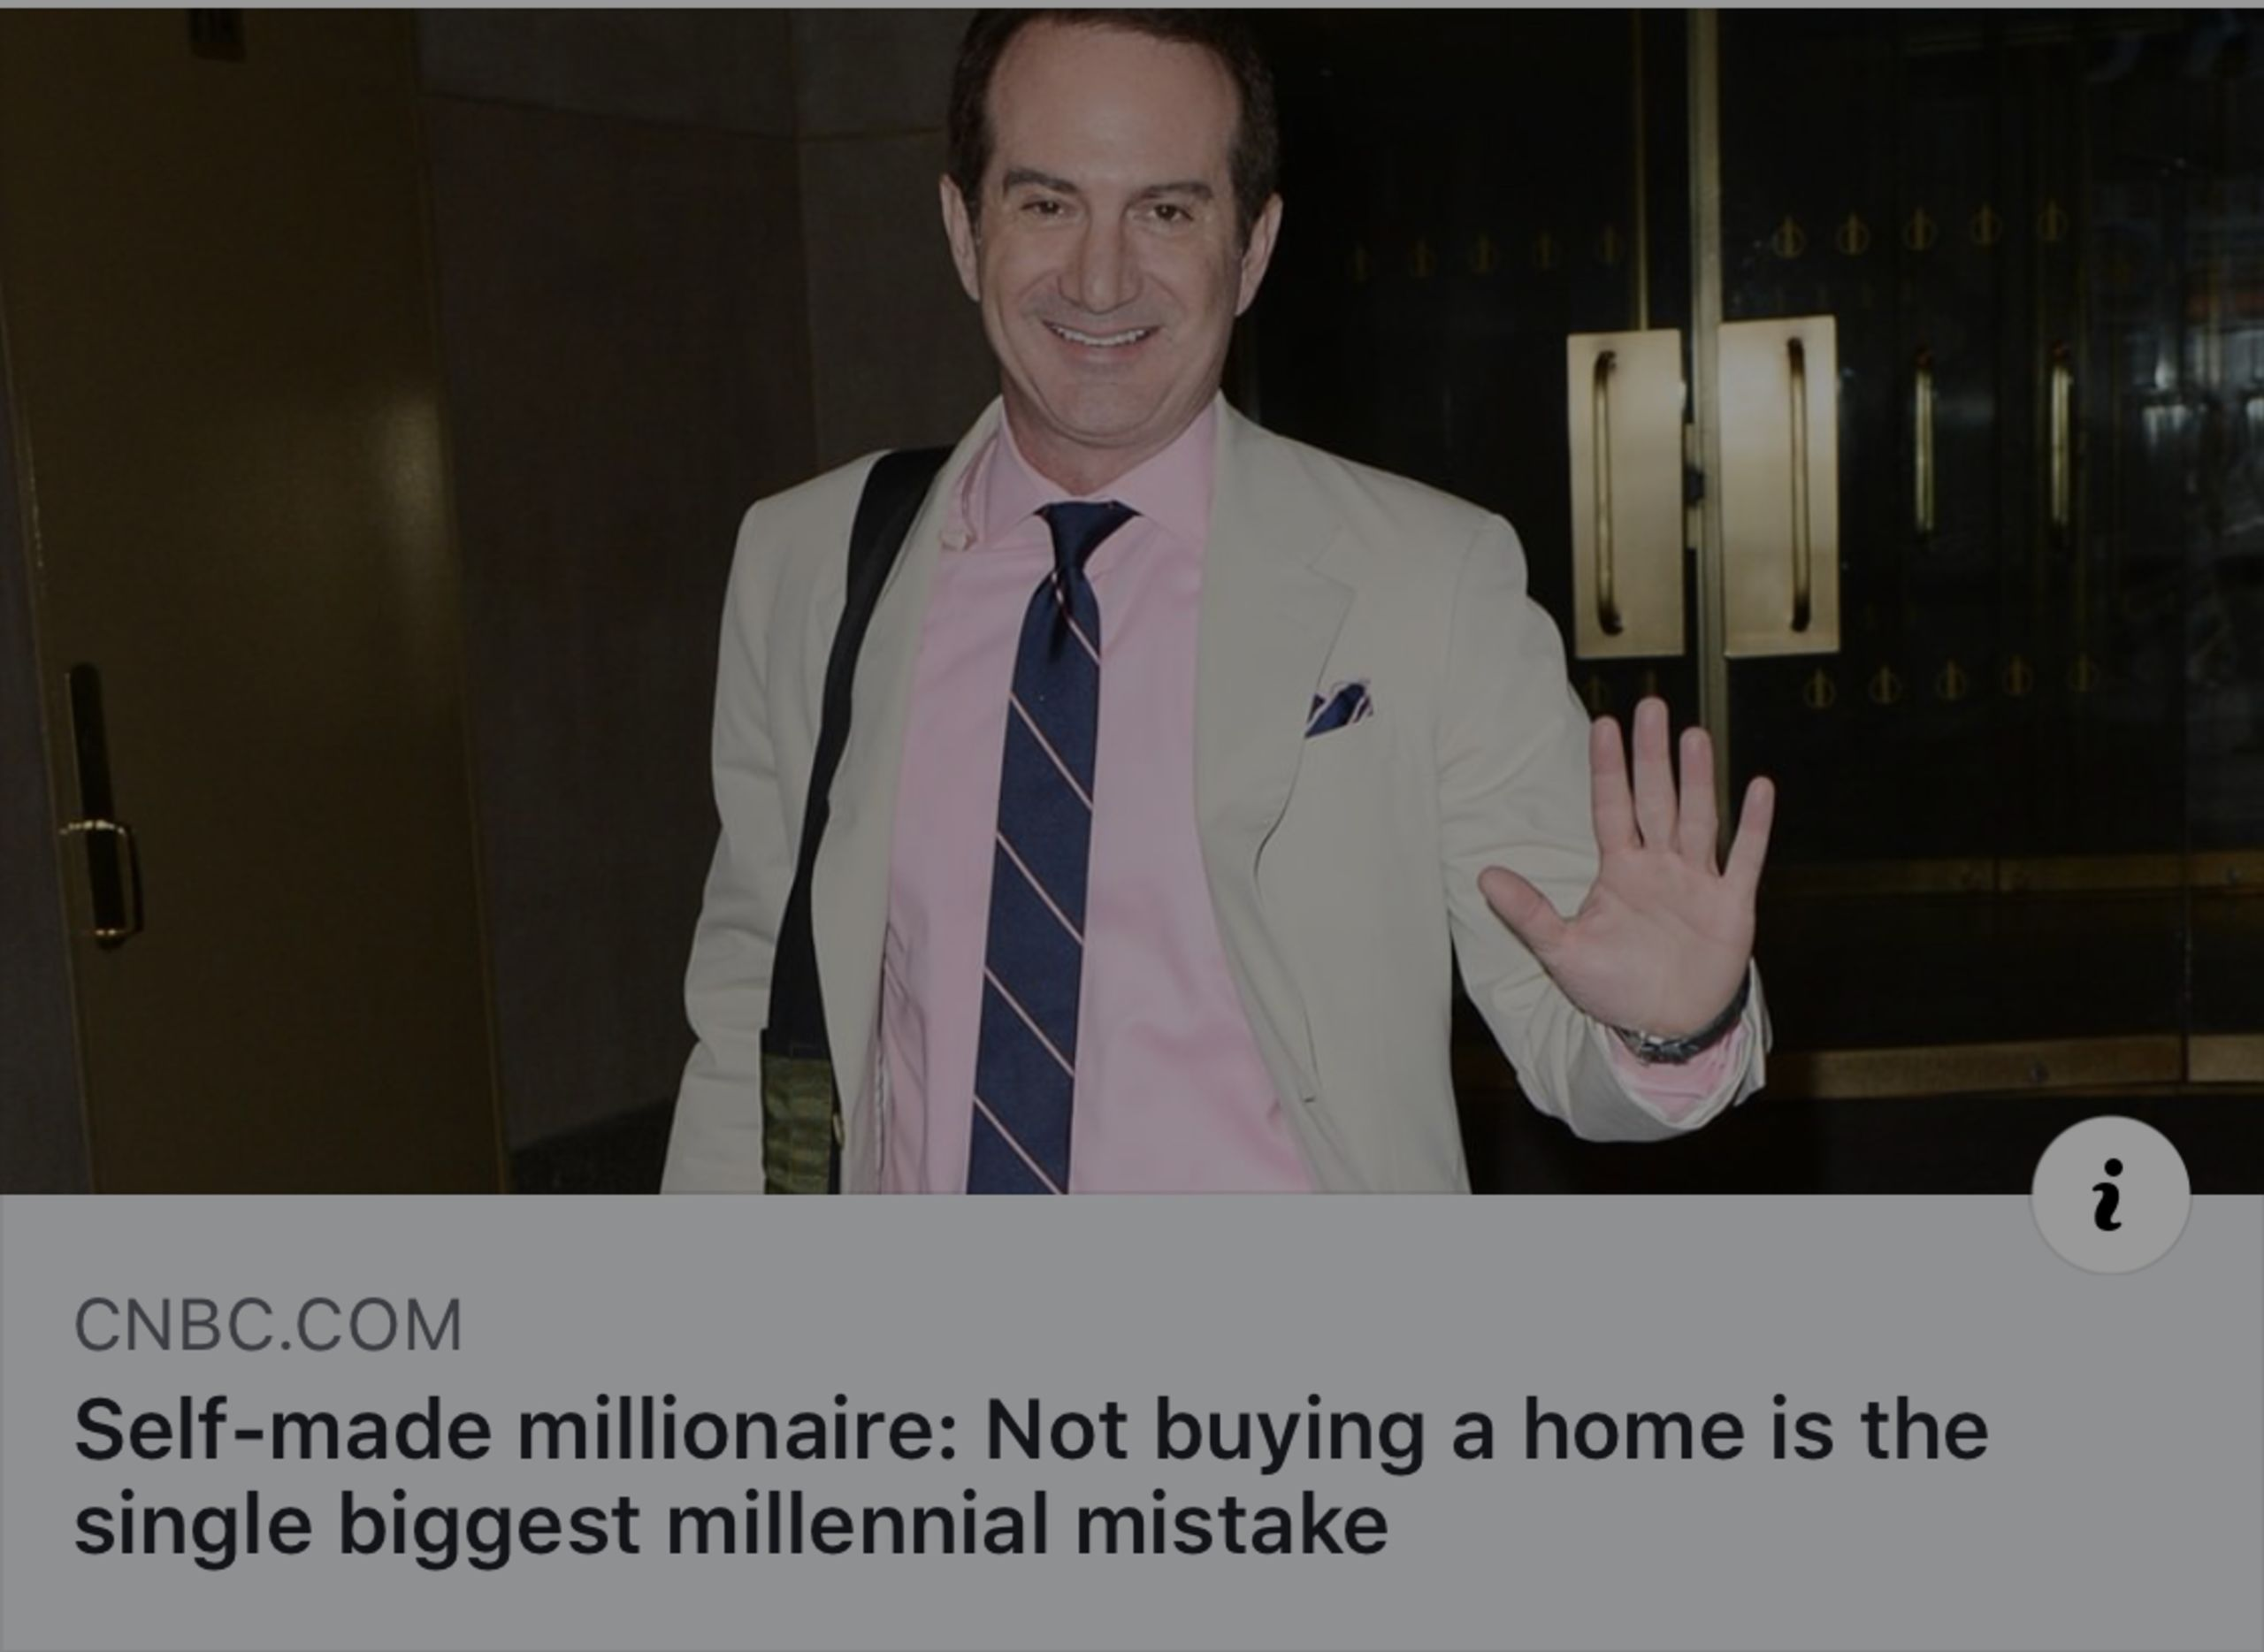 Self-made millionaire: Not buying a home is the single biggest millennial mistake